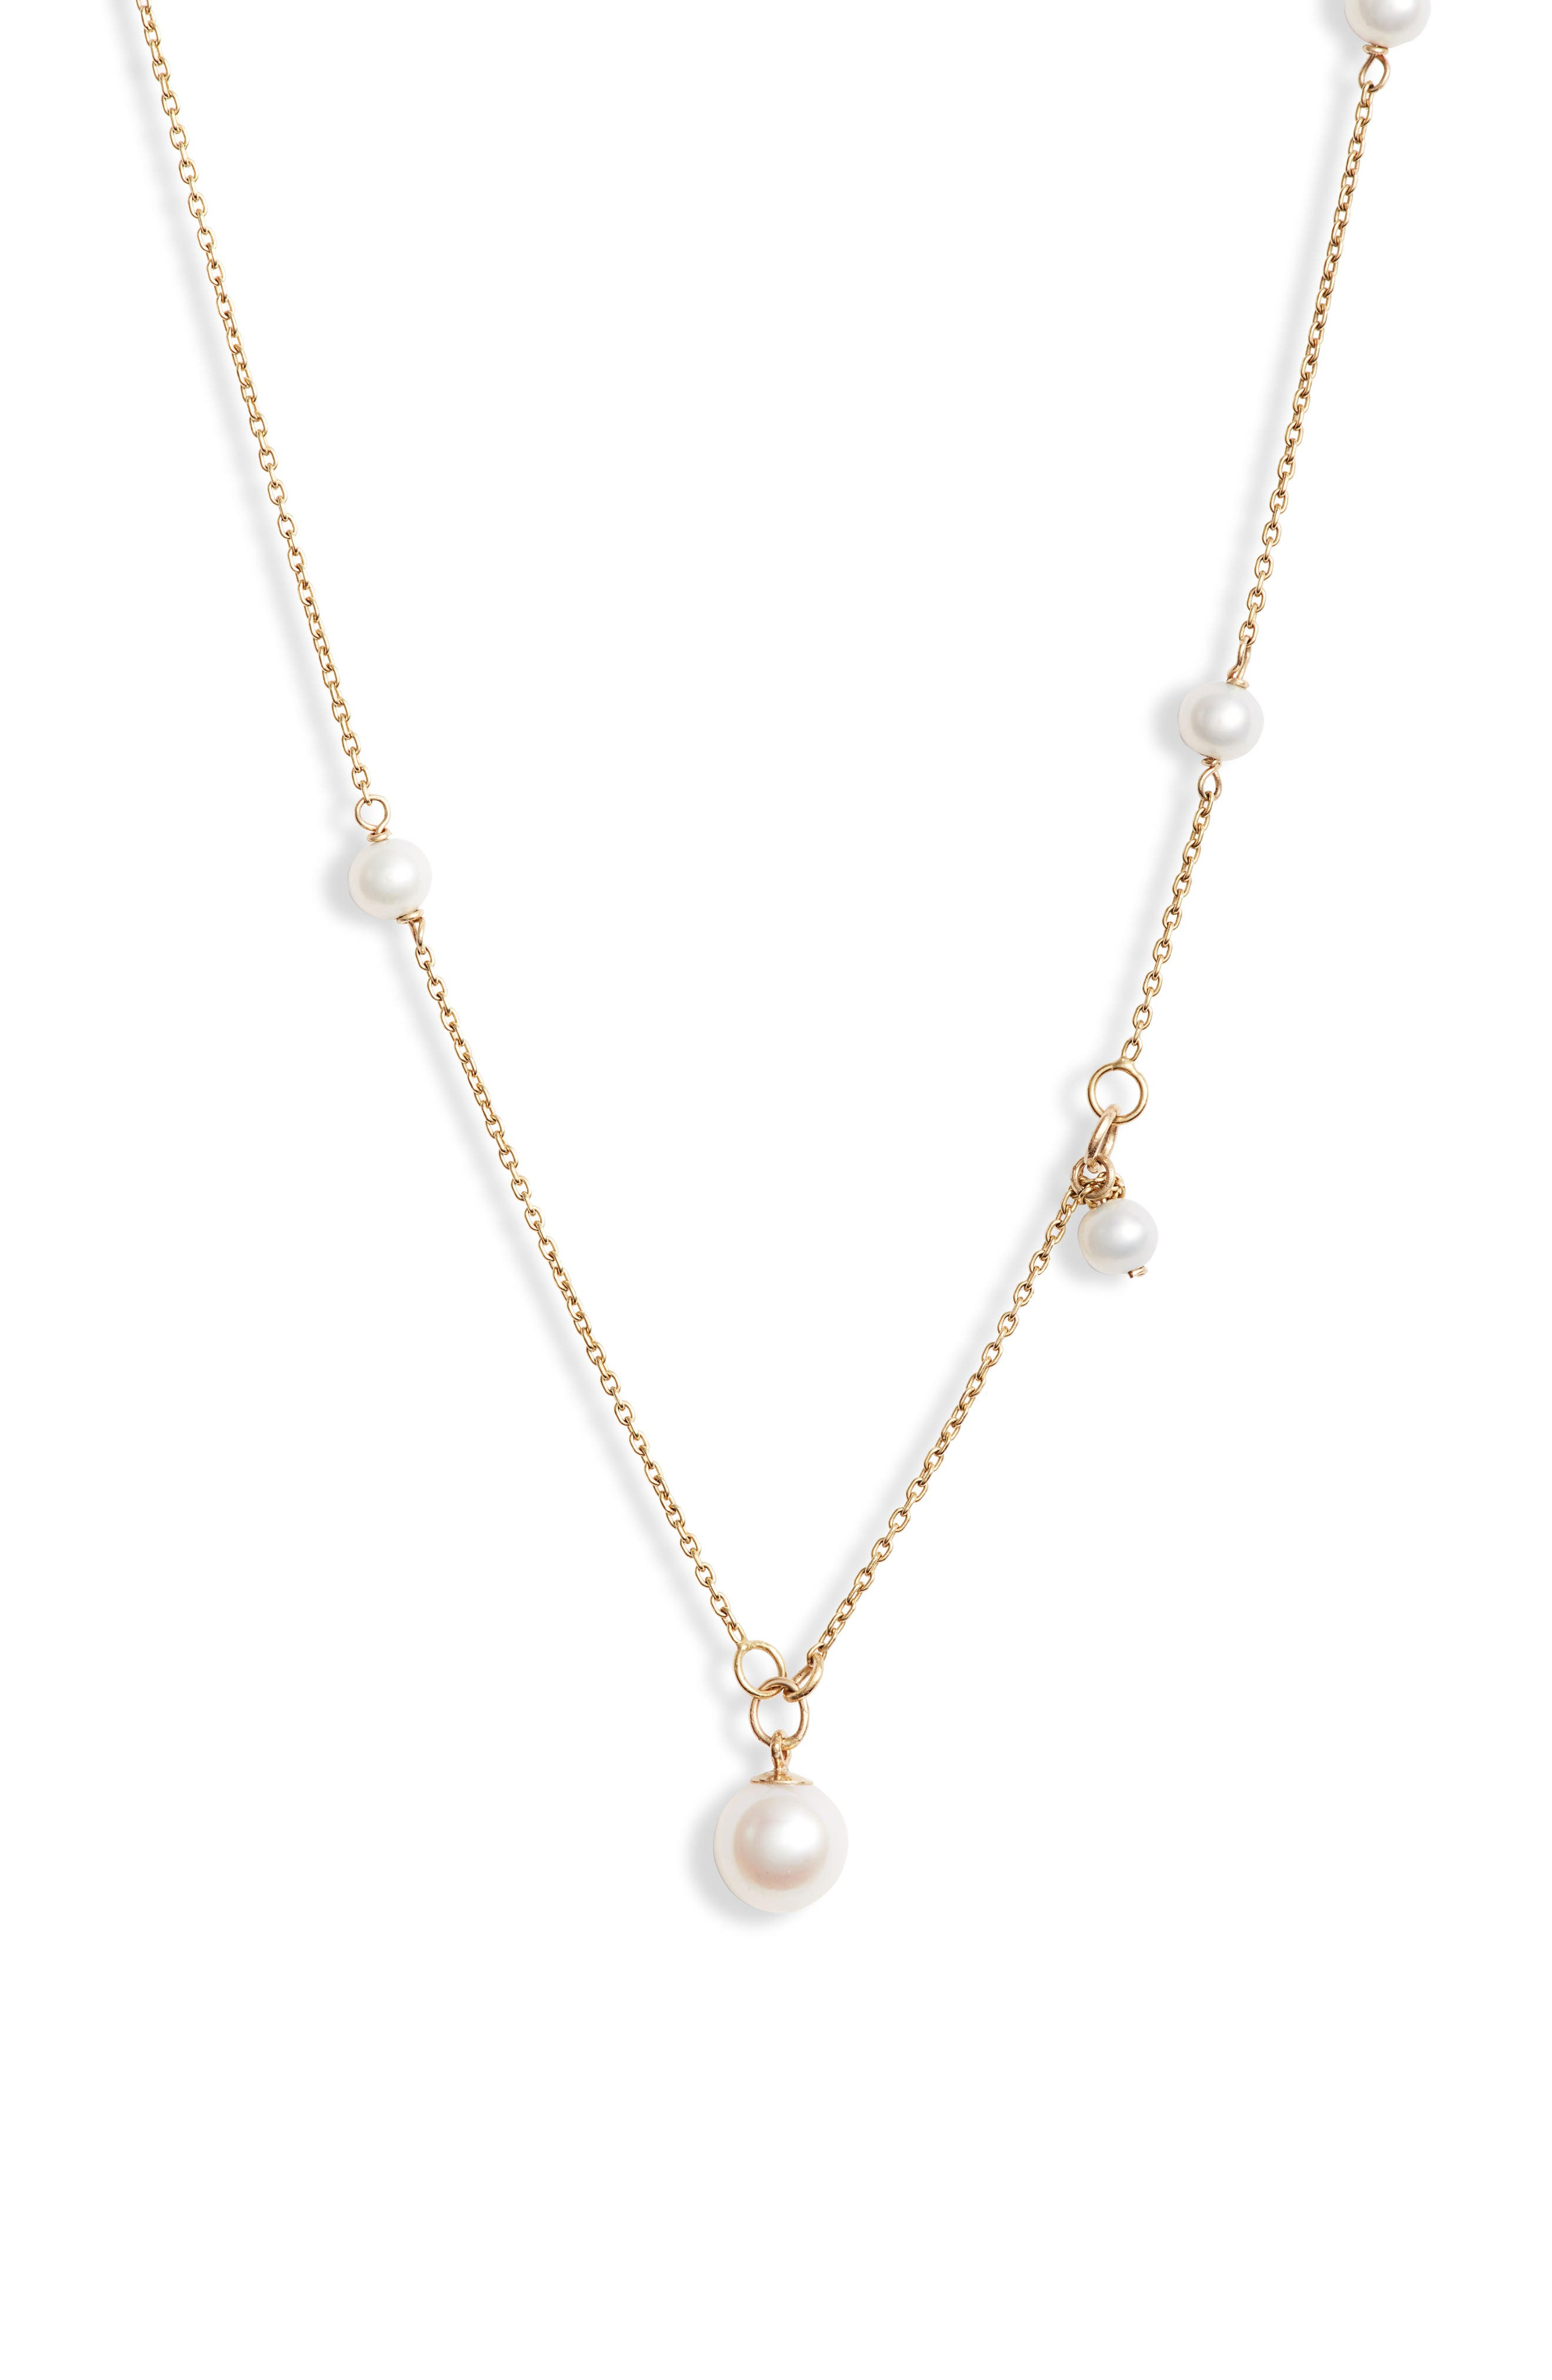 Pearl & Onyx Necklace,                             Alternate thumbnail 2, color,                             YELLOW GOLD/ PEARL